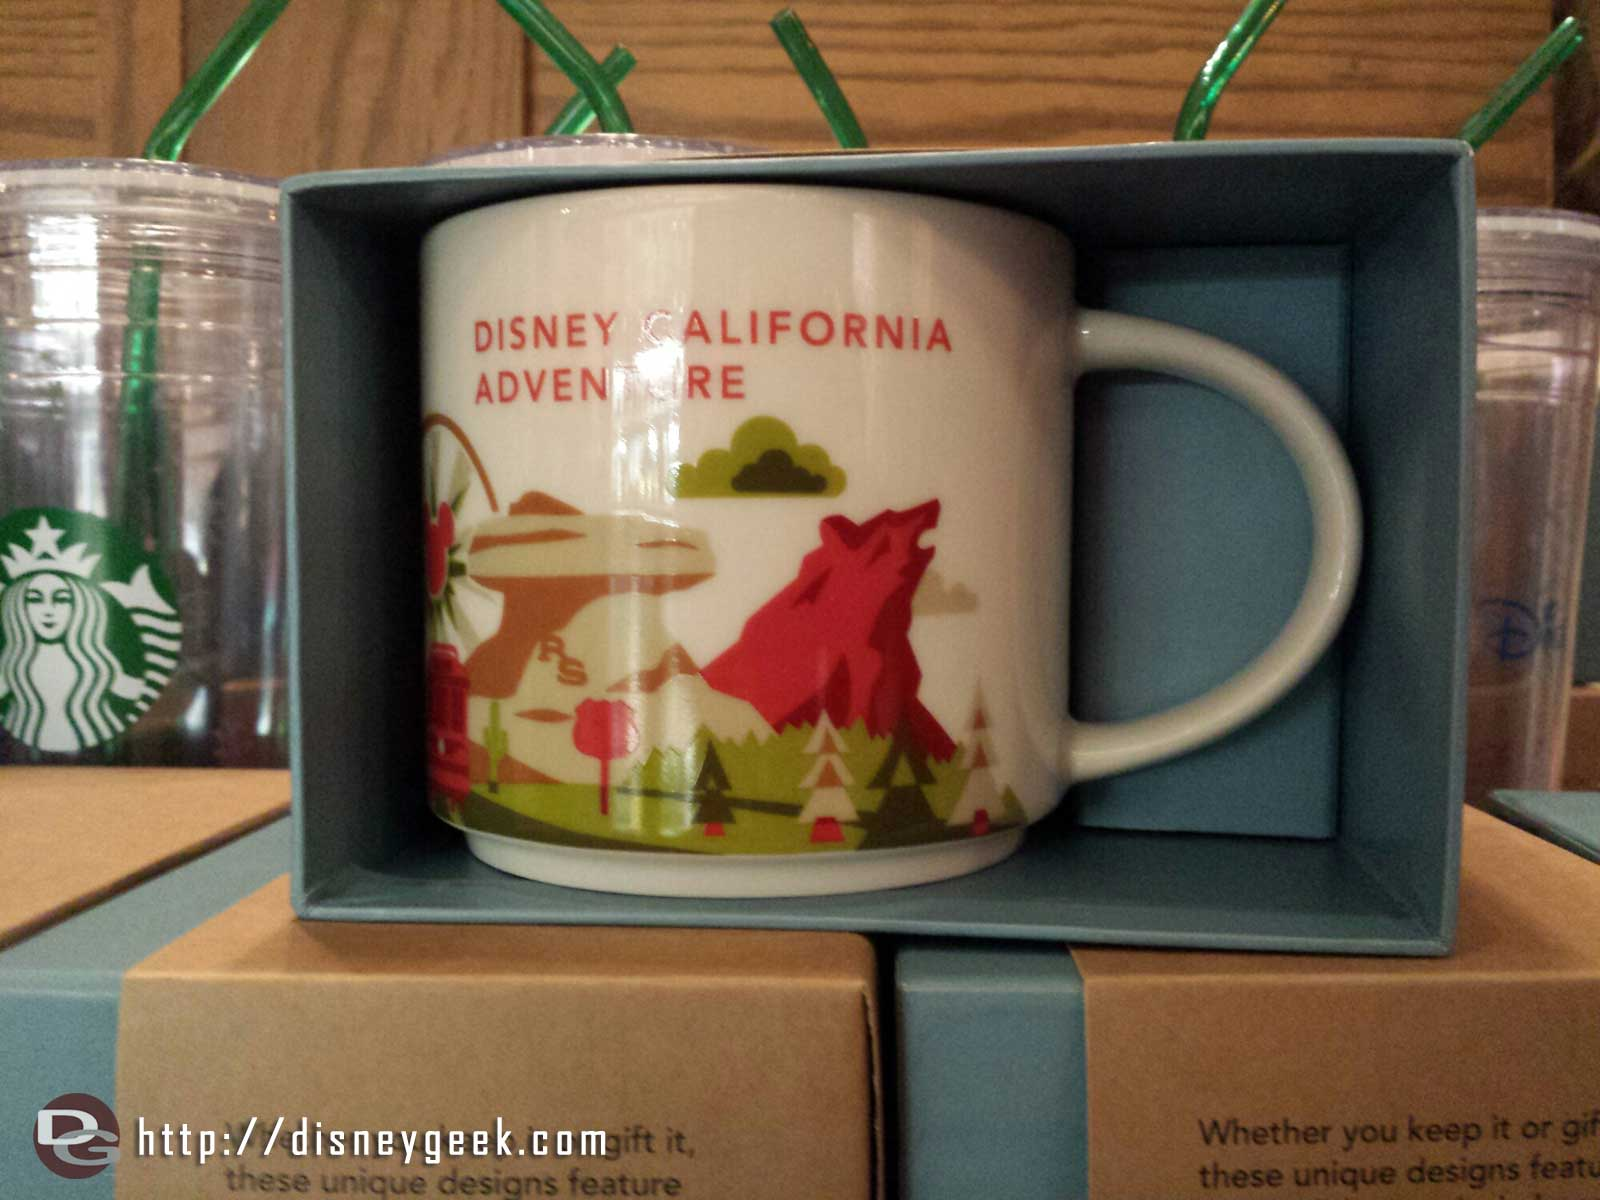 The Fiddler, Fifer & Practical Cafe on #BuenaVistaStreet had DCA Starbucks mugs